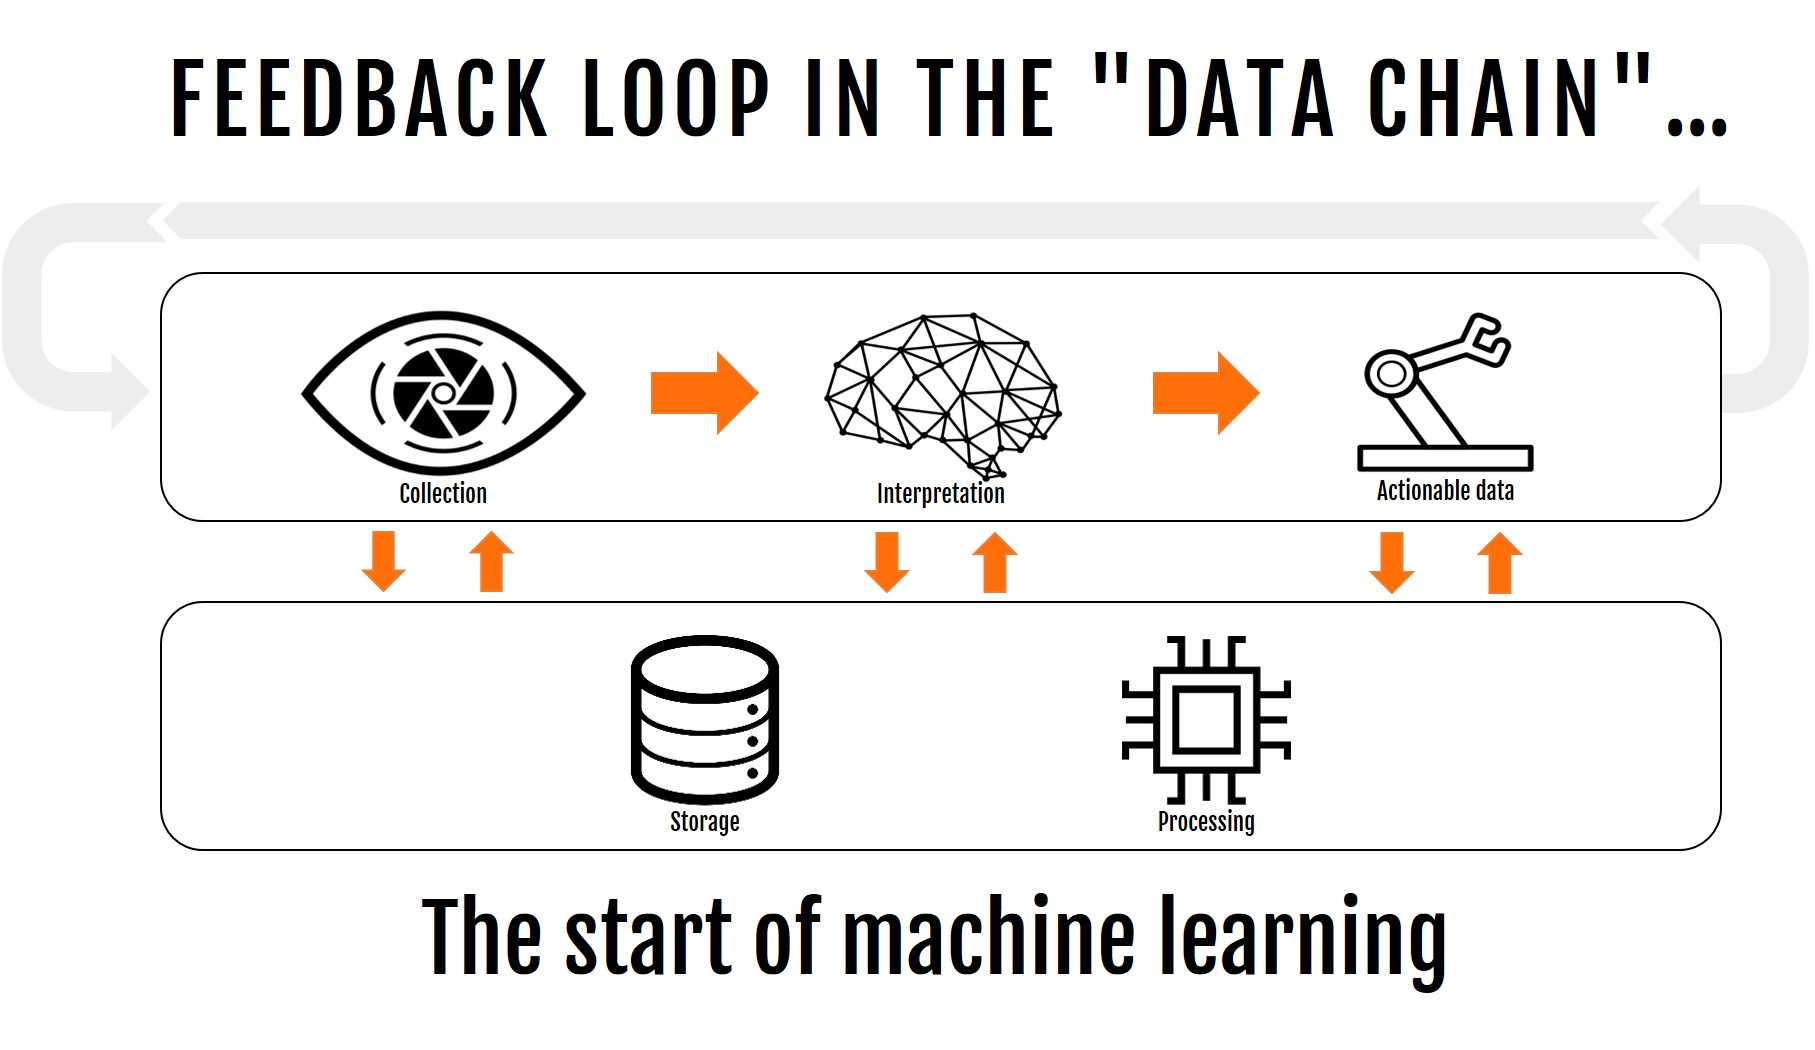 12-feed-back-loop-in-the-data-chain-3_no-logo